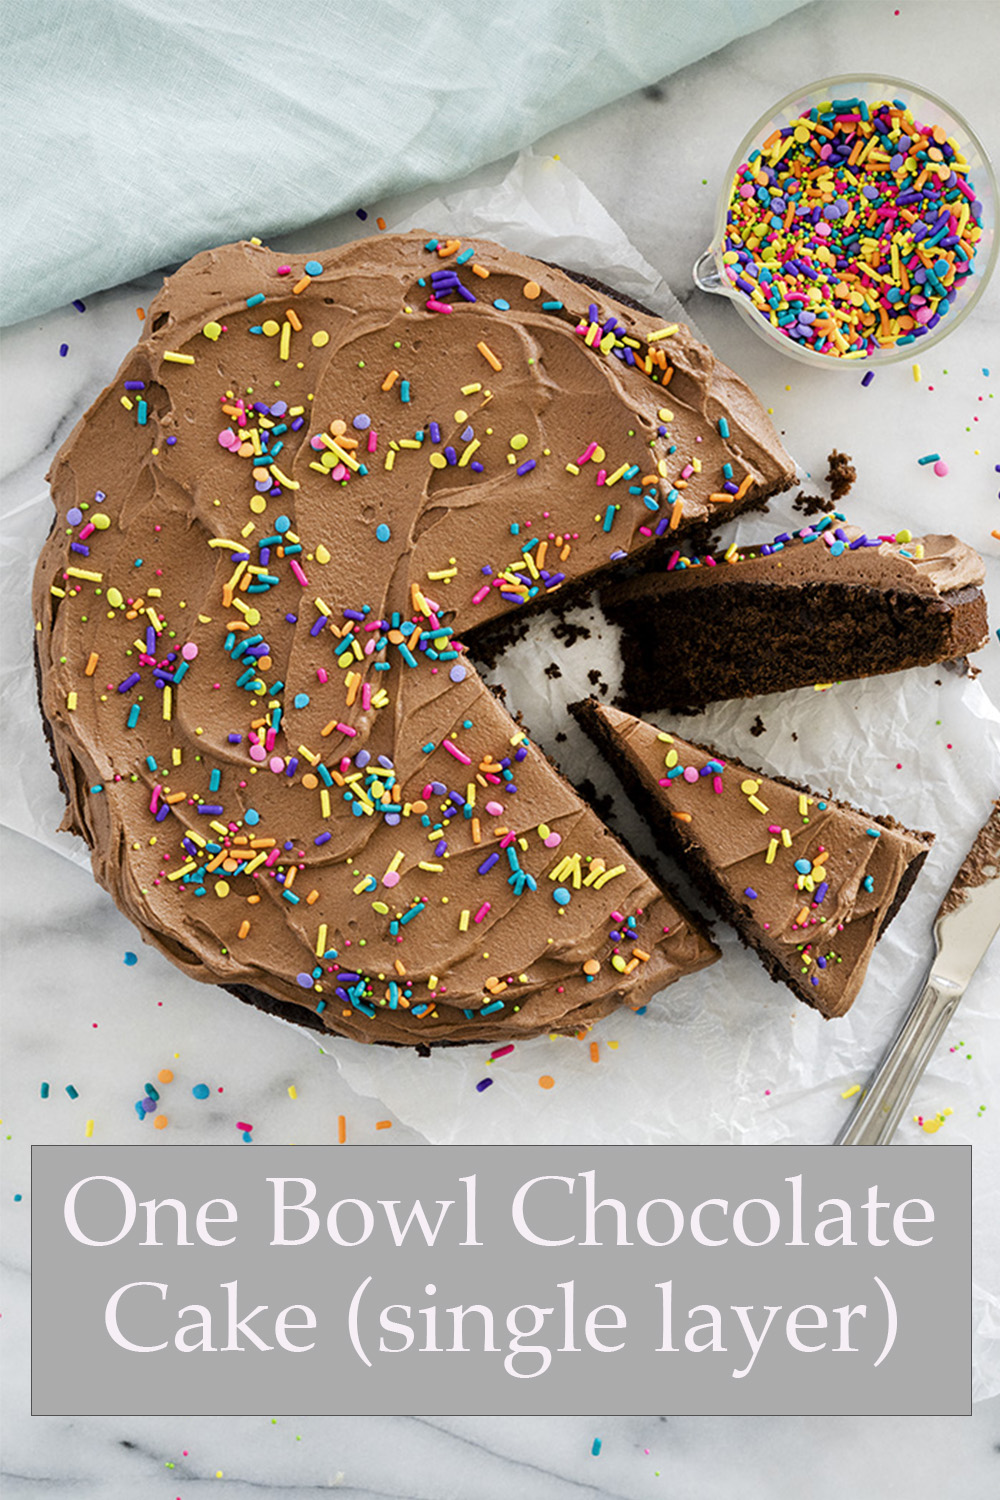 One Bowl Chocolate Cake. All ingredients, one bowl, one spoon (or mixer) and done.